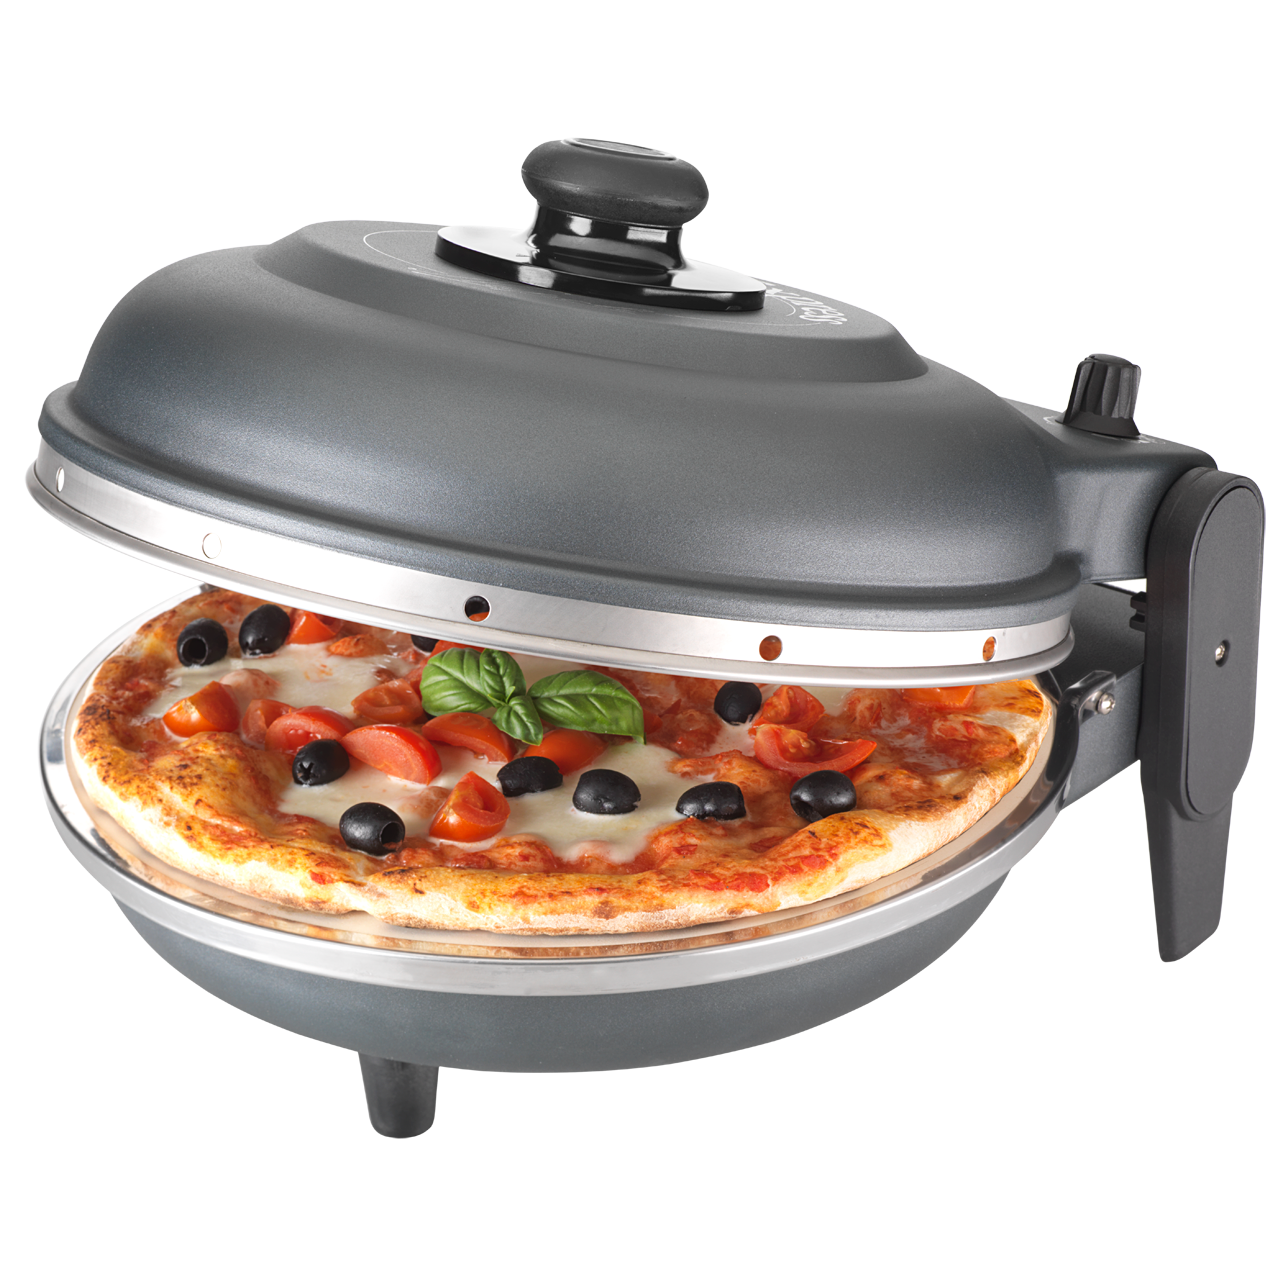 Pizza ovens IT